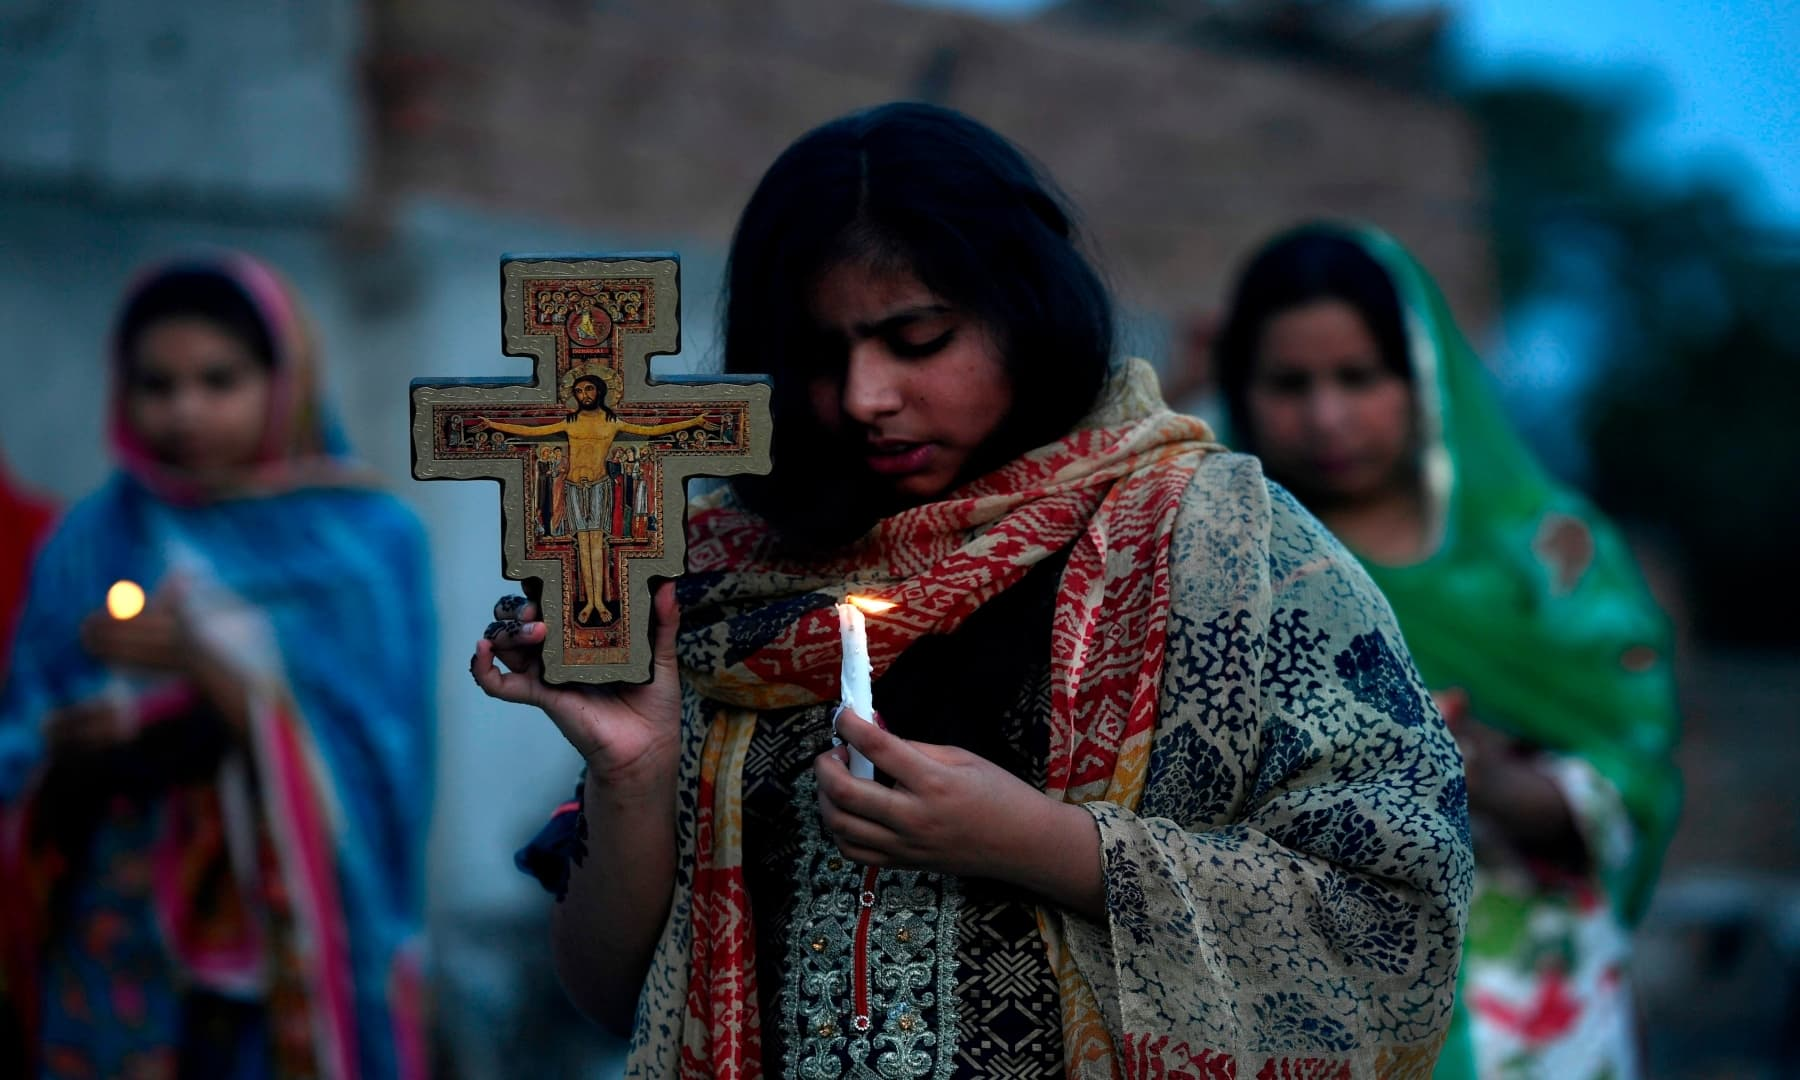 Christians hold candles as they offer prayers during an Easter service in the rooftop of their house in Islamabad. — AFP